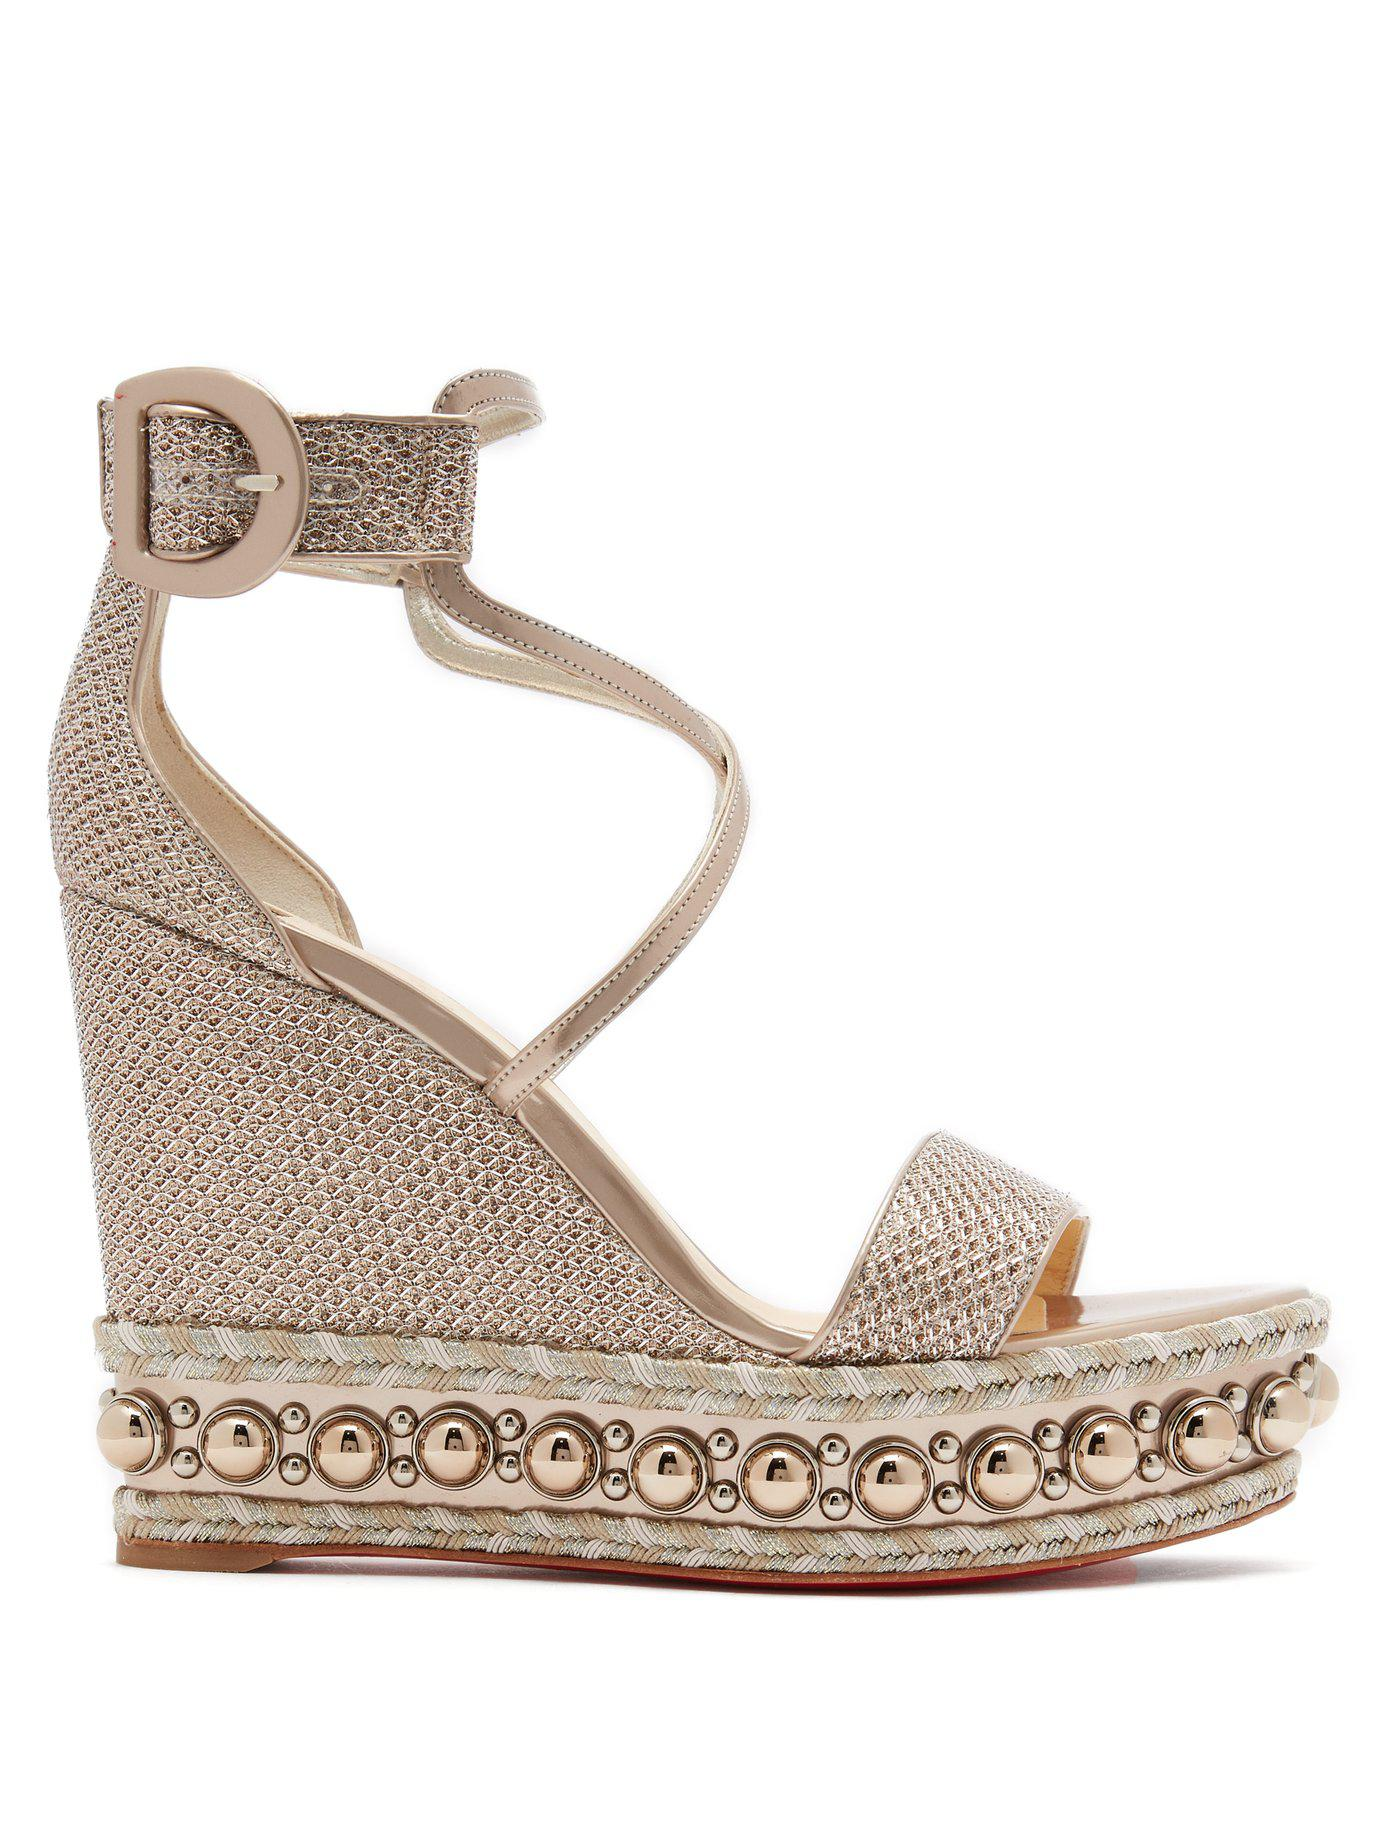 7865f865f555 Christian Louboutin. Women s Metallic Chocazeppa 120 Leather Wedge Sandals